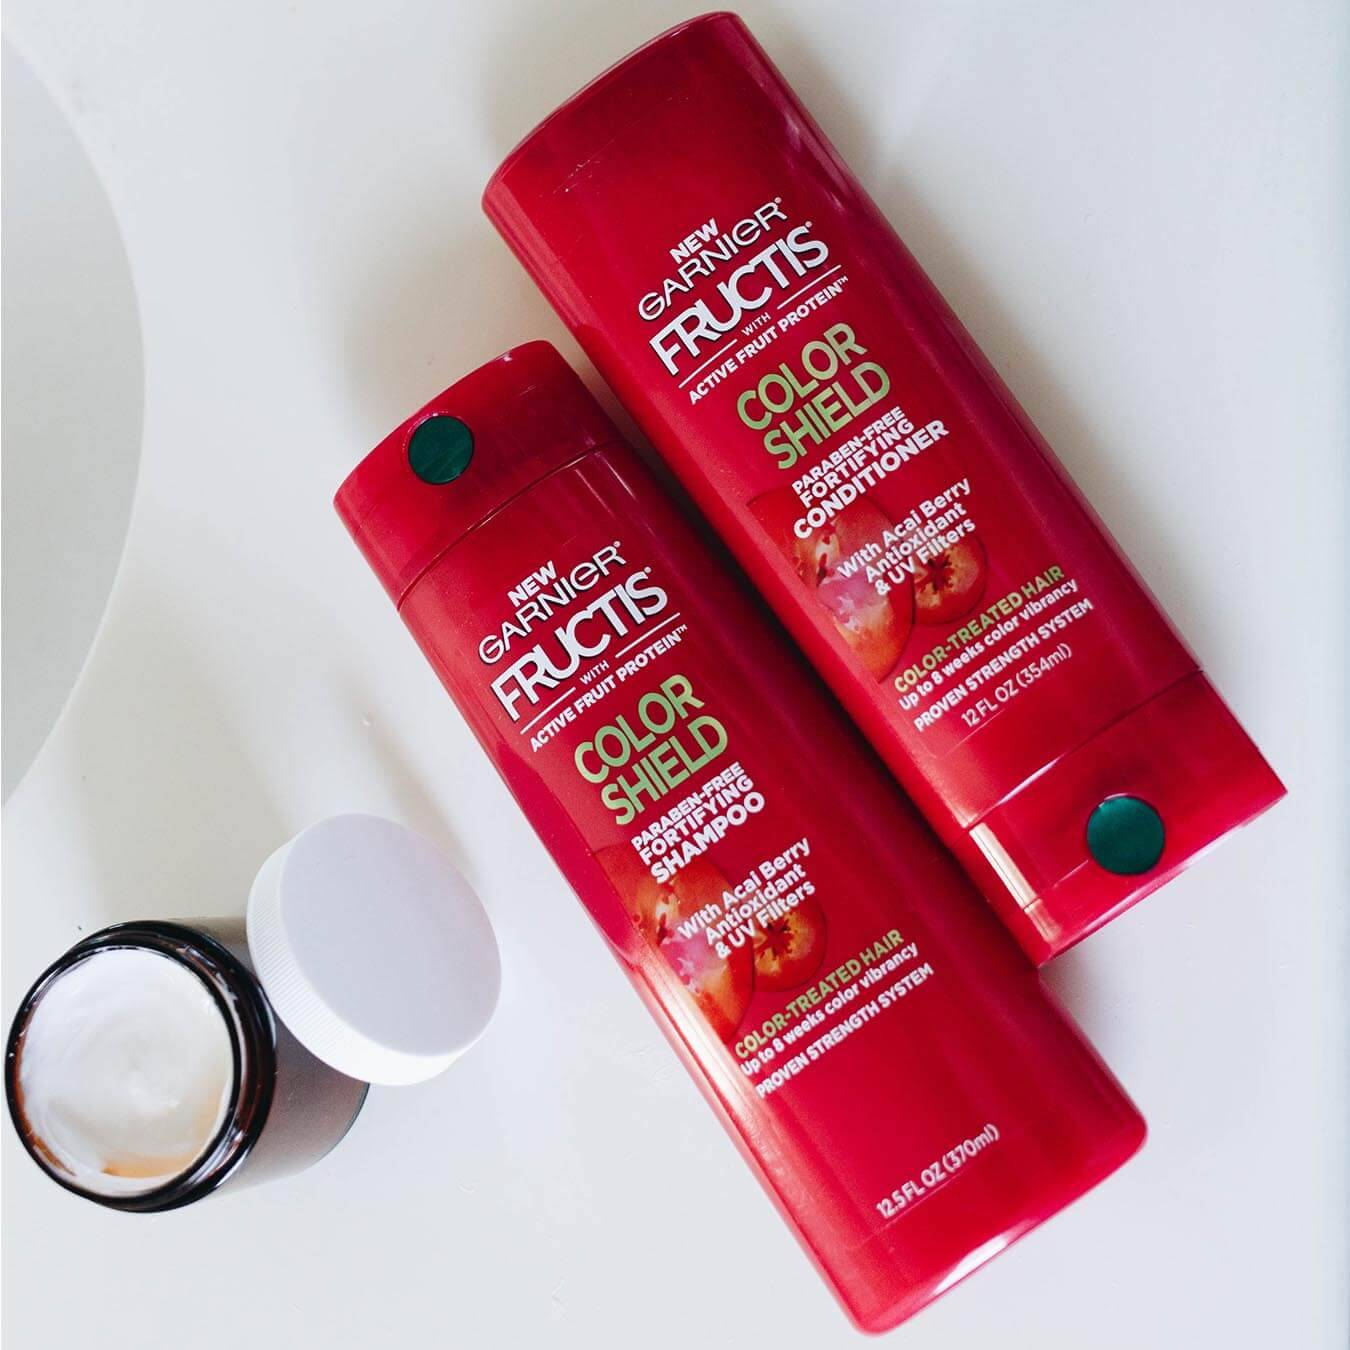 Garnier Fructis Color Shield Fortifying Shampoo and Fructis Color Shield Fortifying Conditioner on a white table next to an open facial cream container.